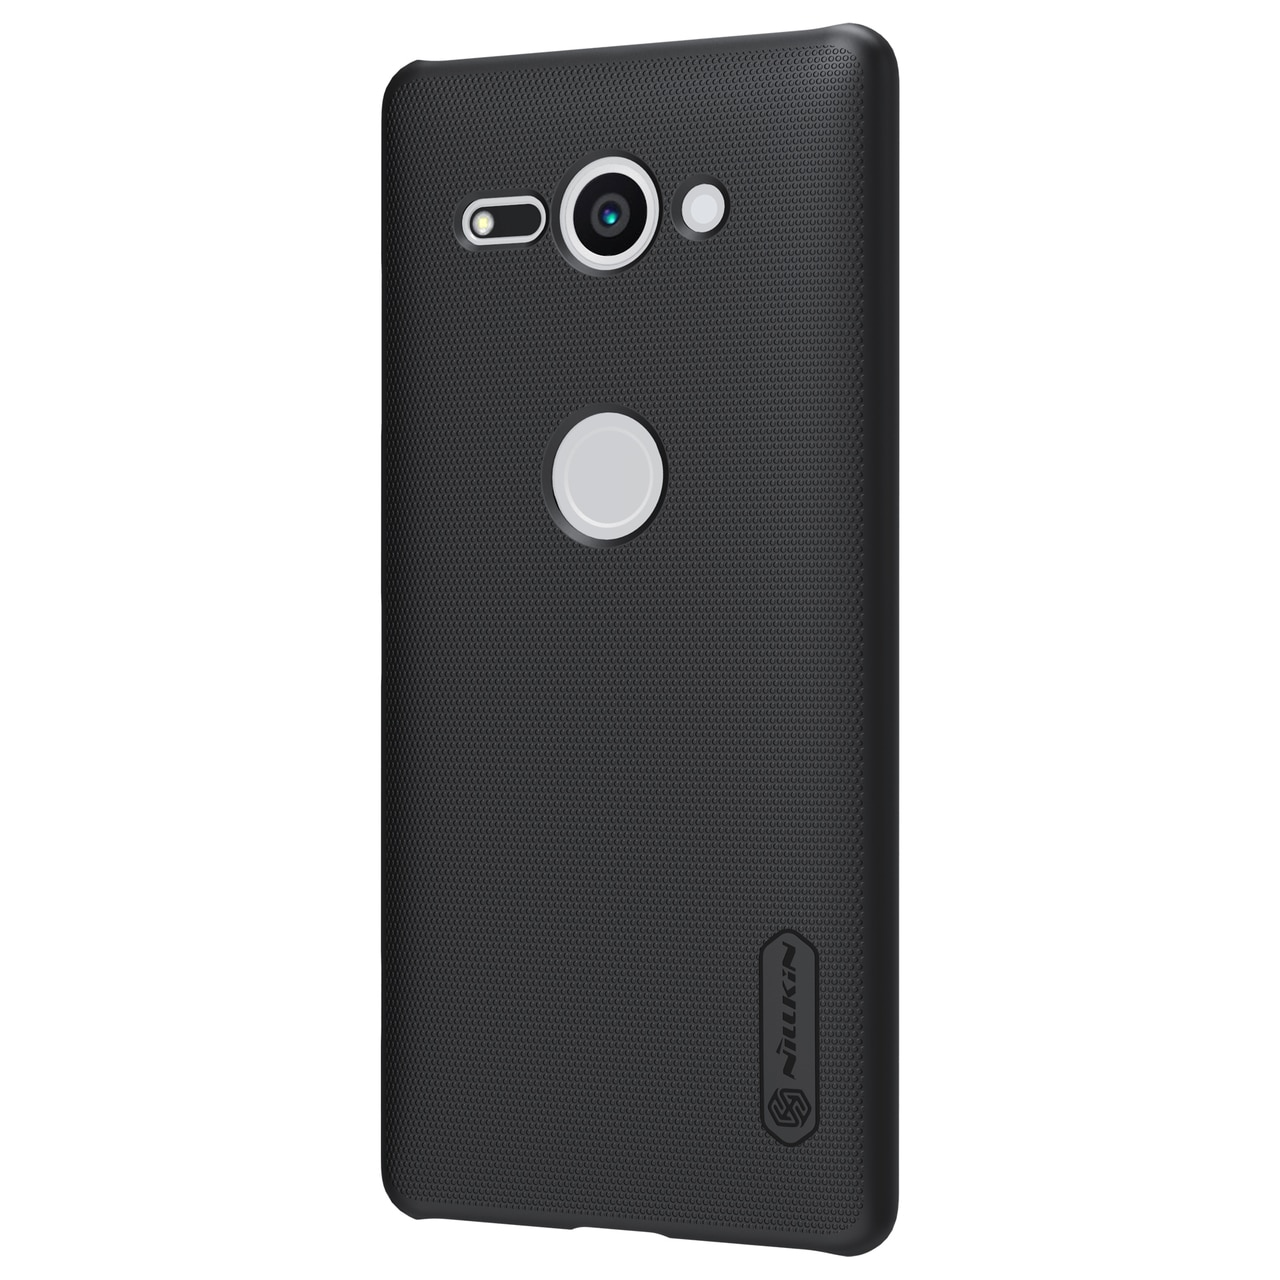 Sony Xperia XZ2 Compact Frosted Shield Hard Back Cover by Nillkin - Black